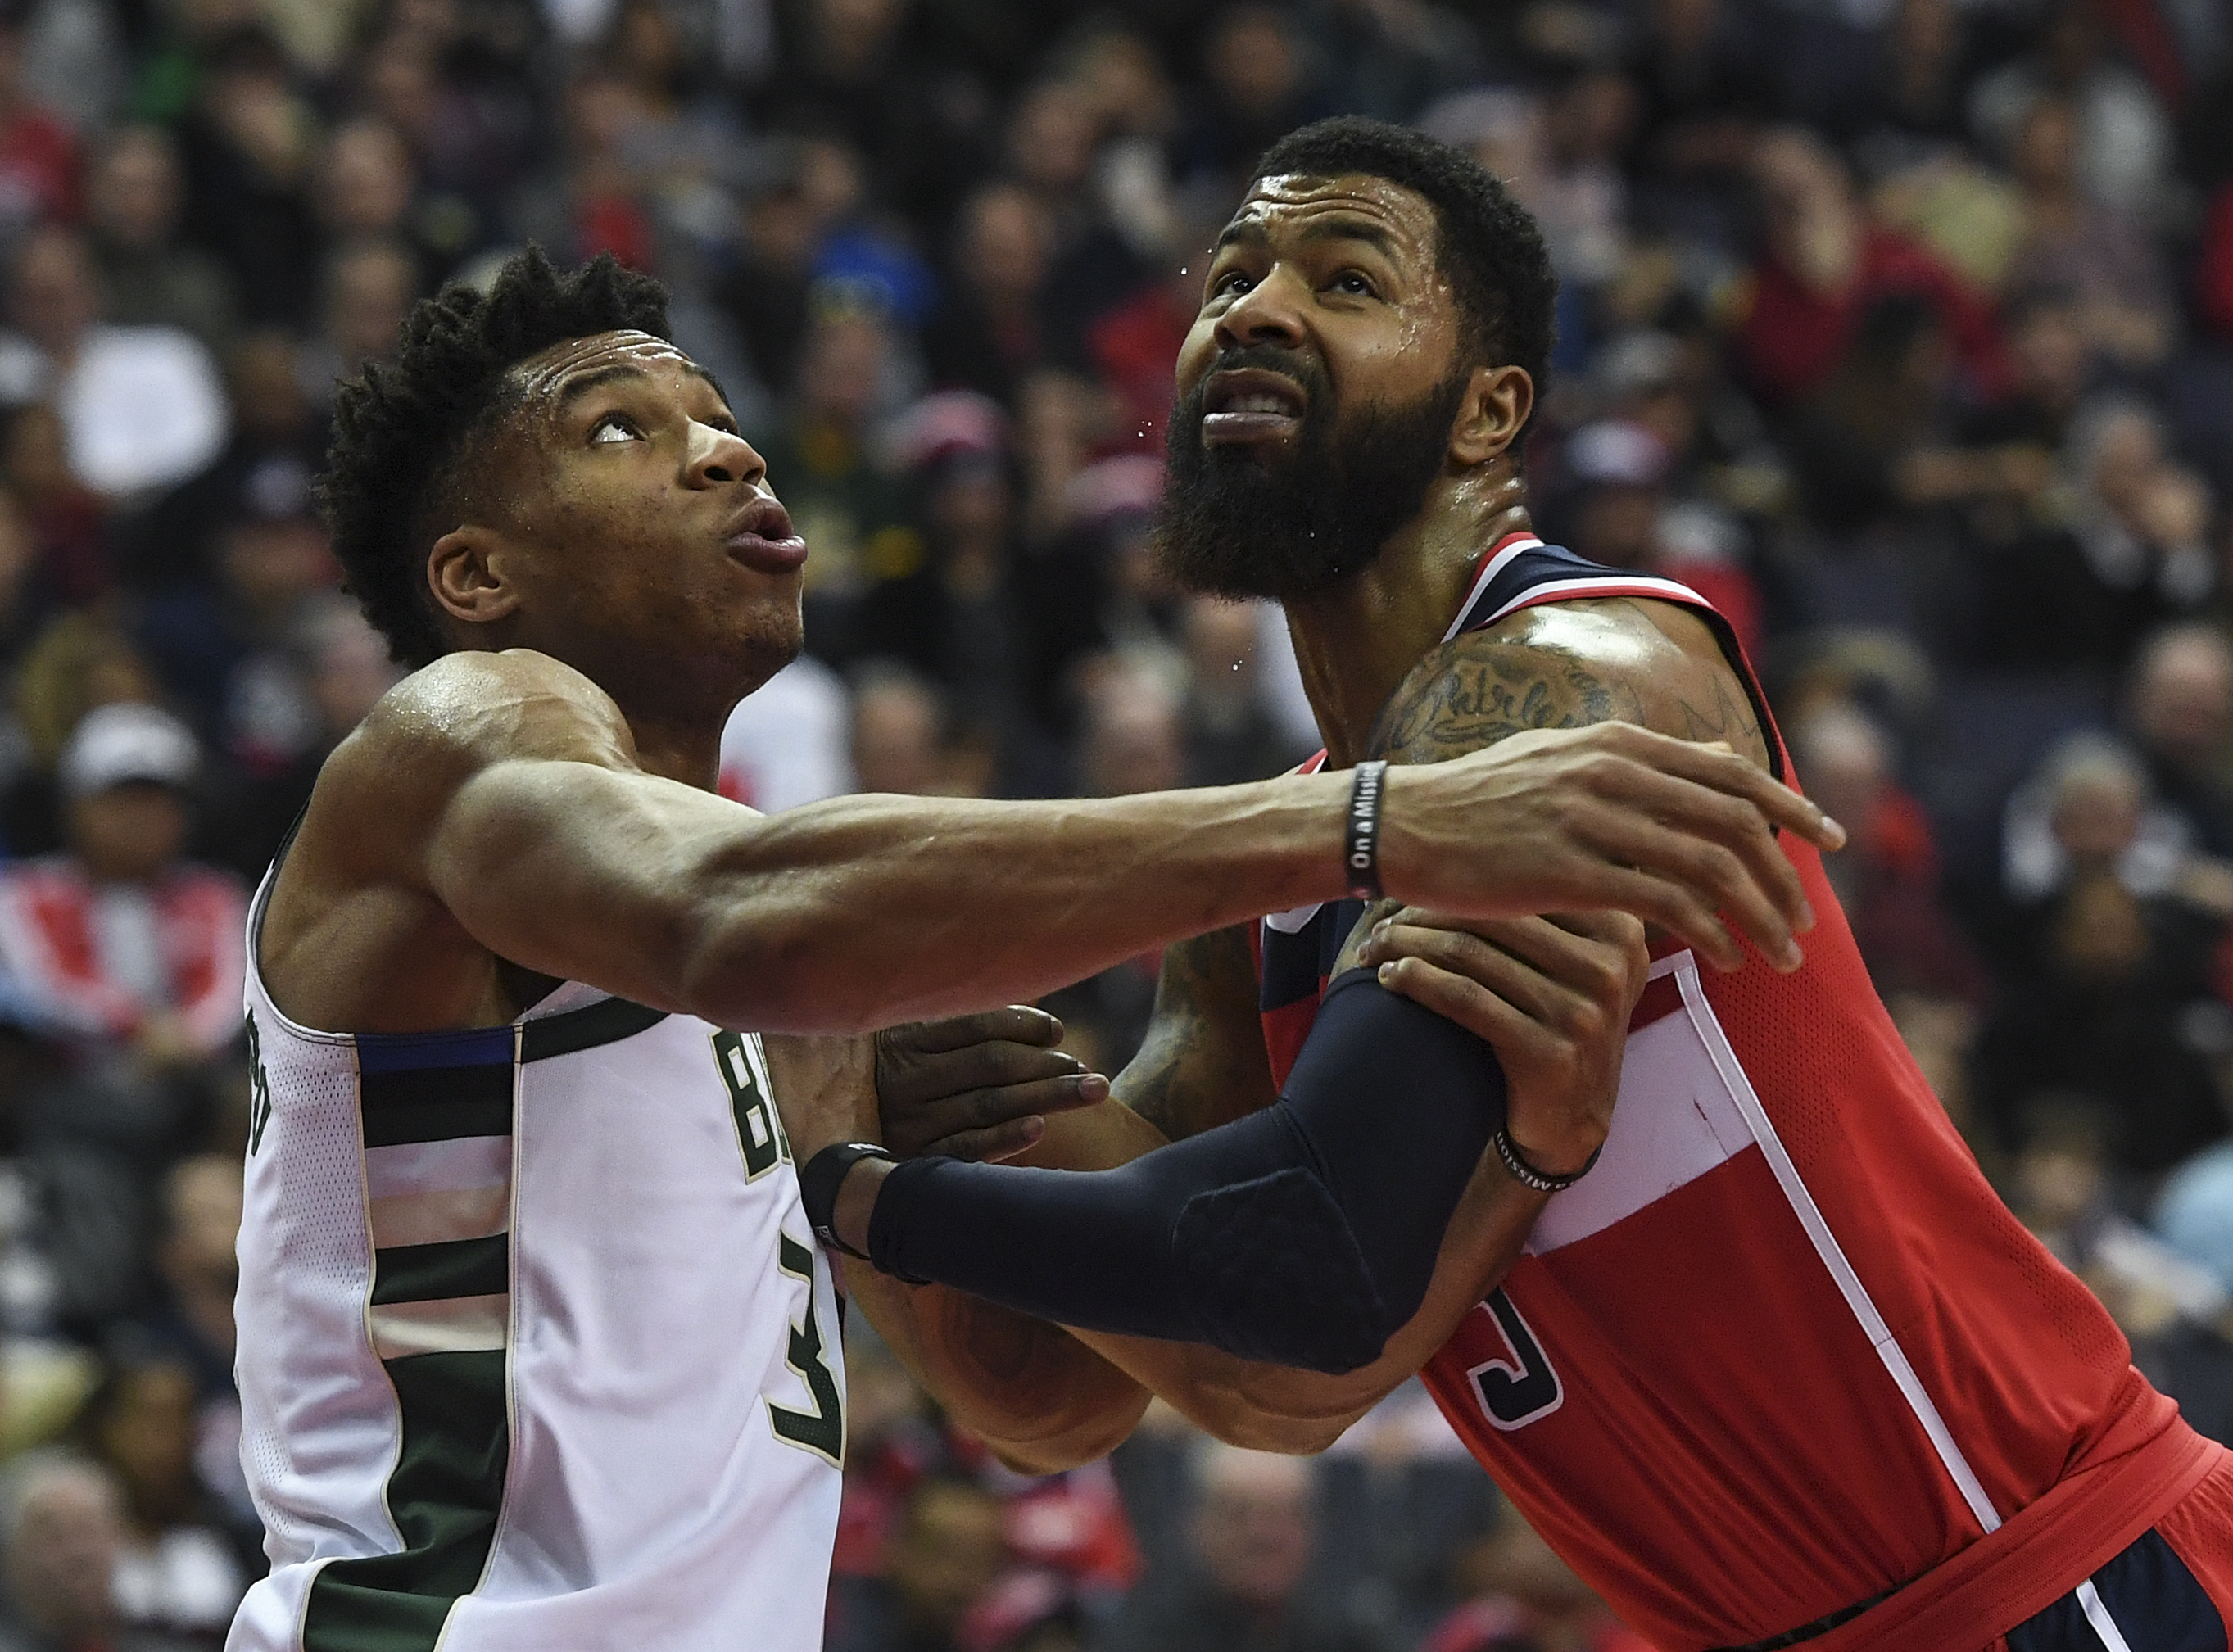 Beal's 21 points help Wizards hold off Bucks